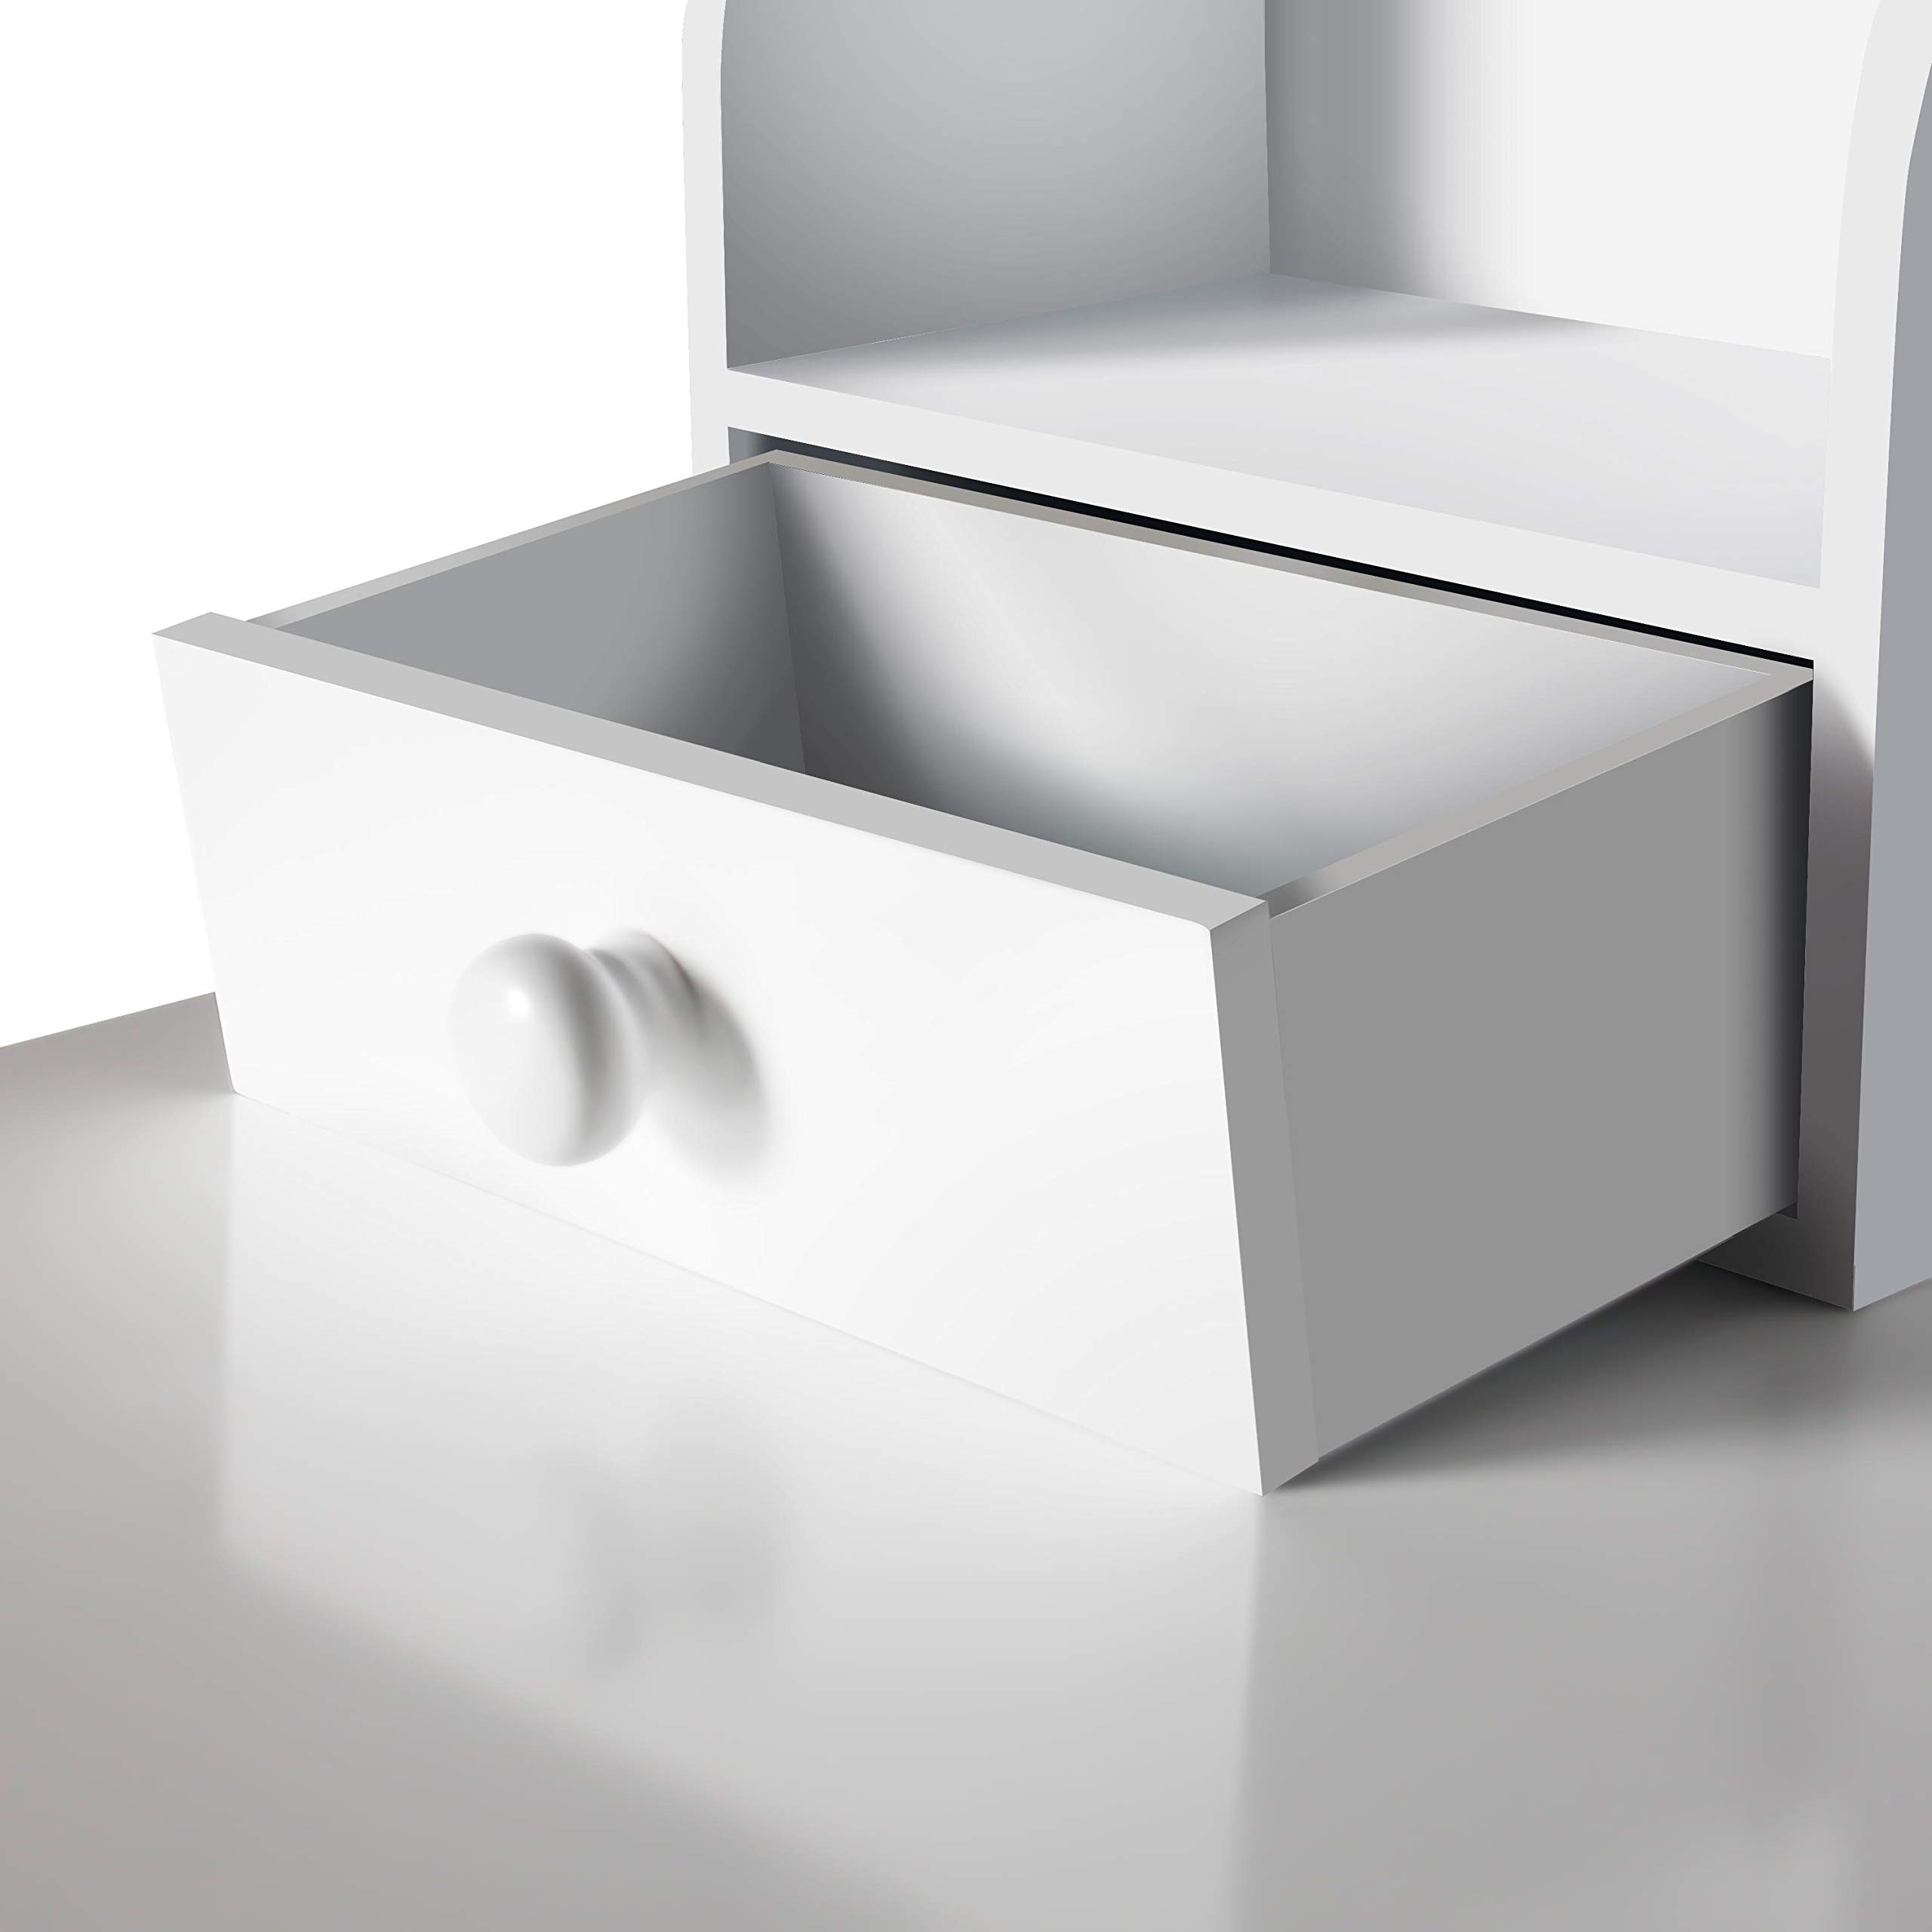 Home Office Furniture Writing Desk,Computer Work Station with Detachable Hutch,5 Drawers(White) by FUNKOCO (Image #6)